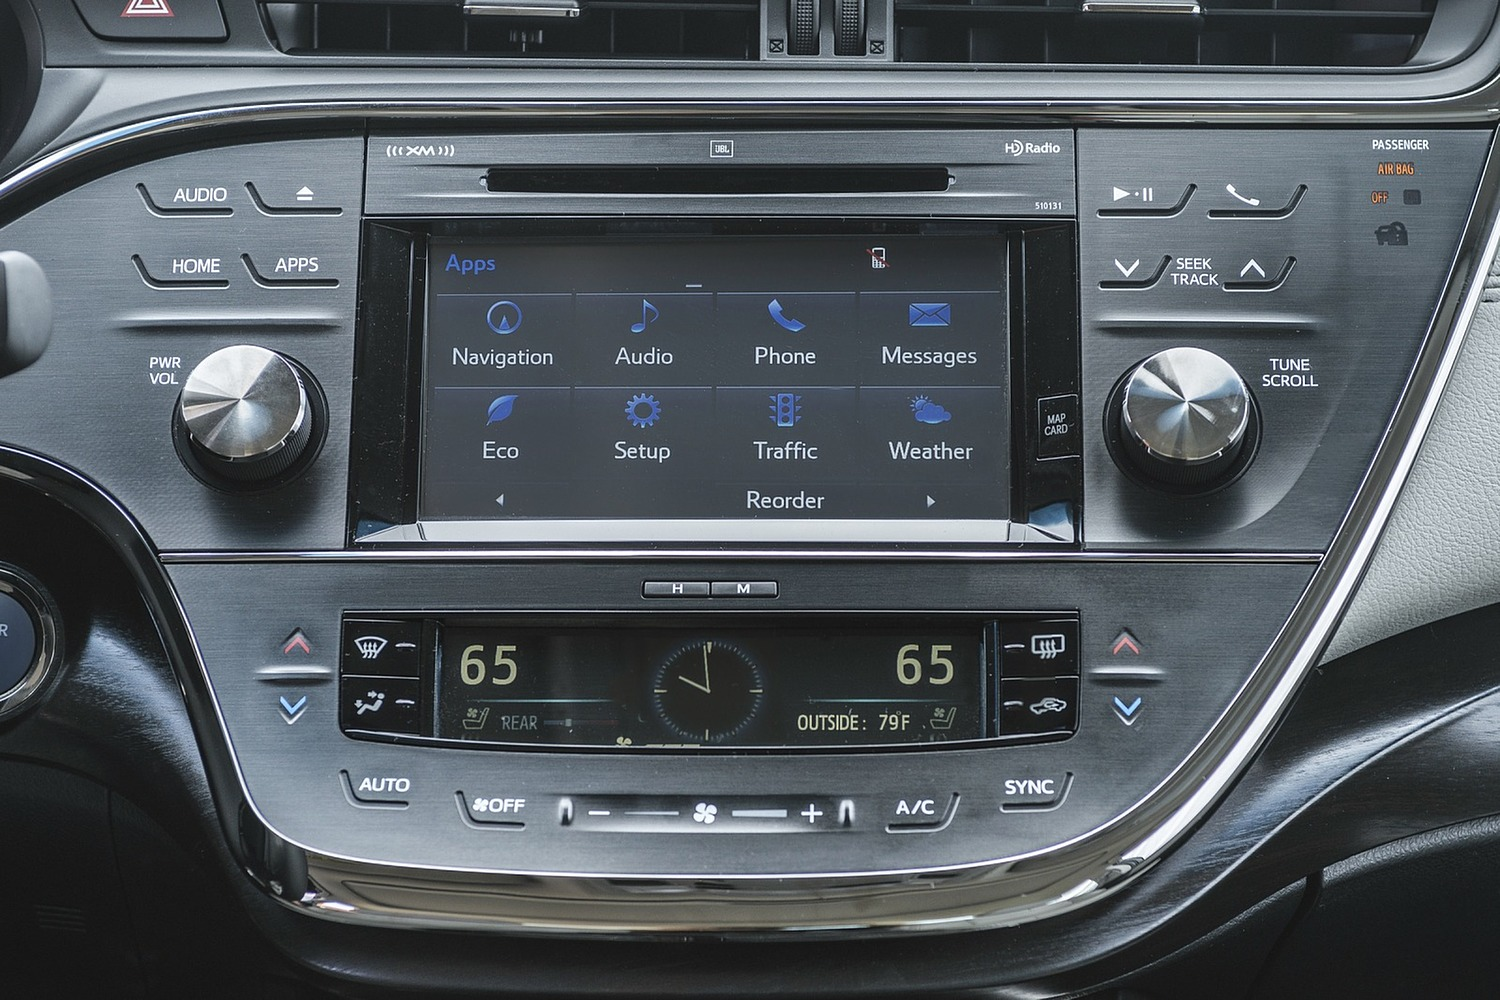 Toyota Avalon Hybrid Sedan Center Console (2017 model year shown)